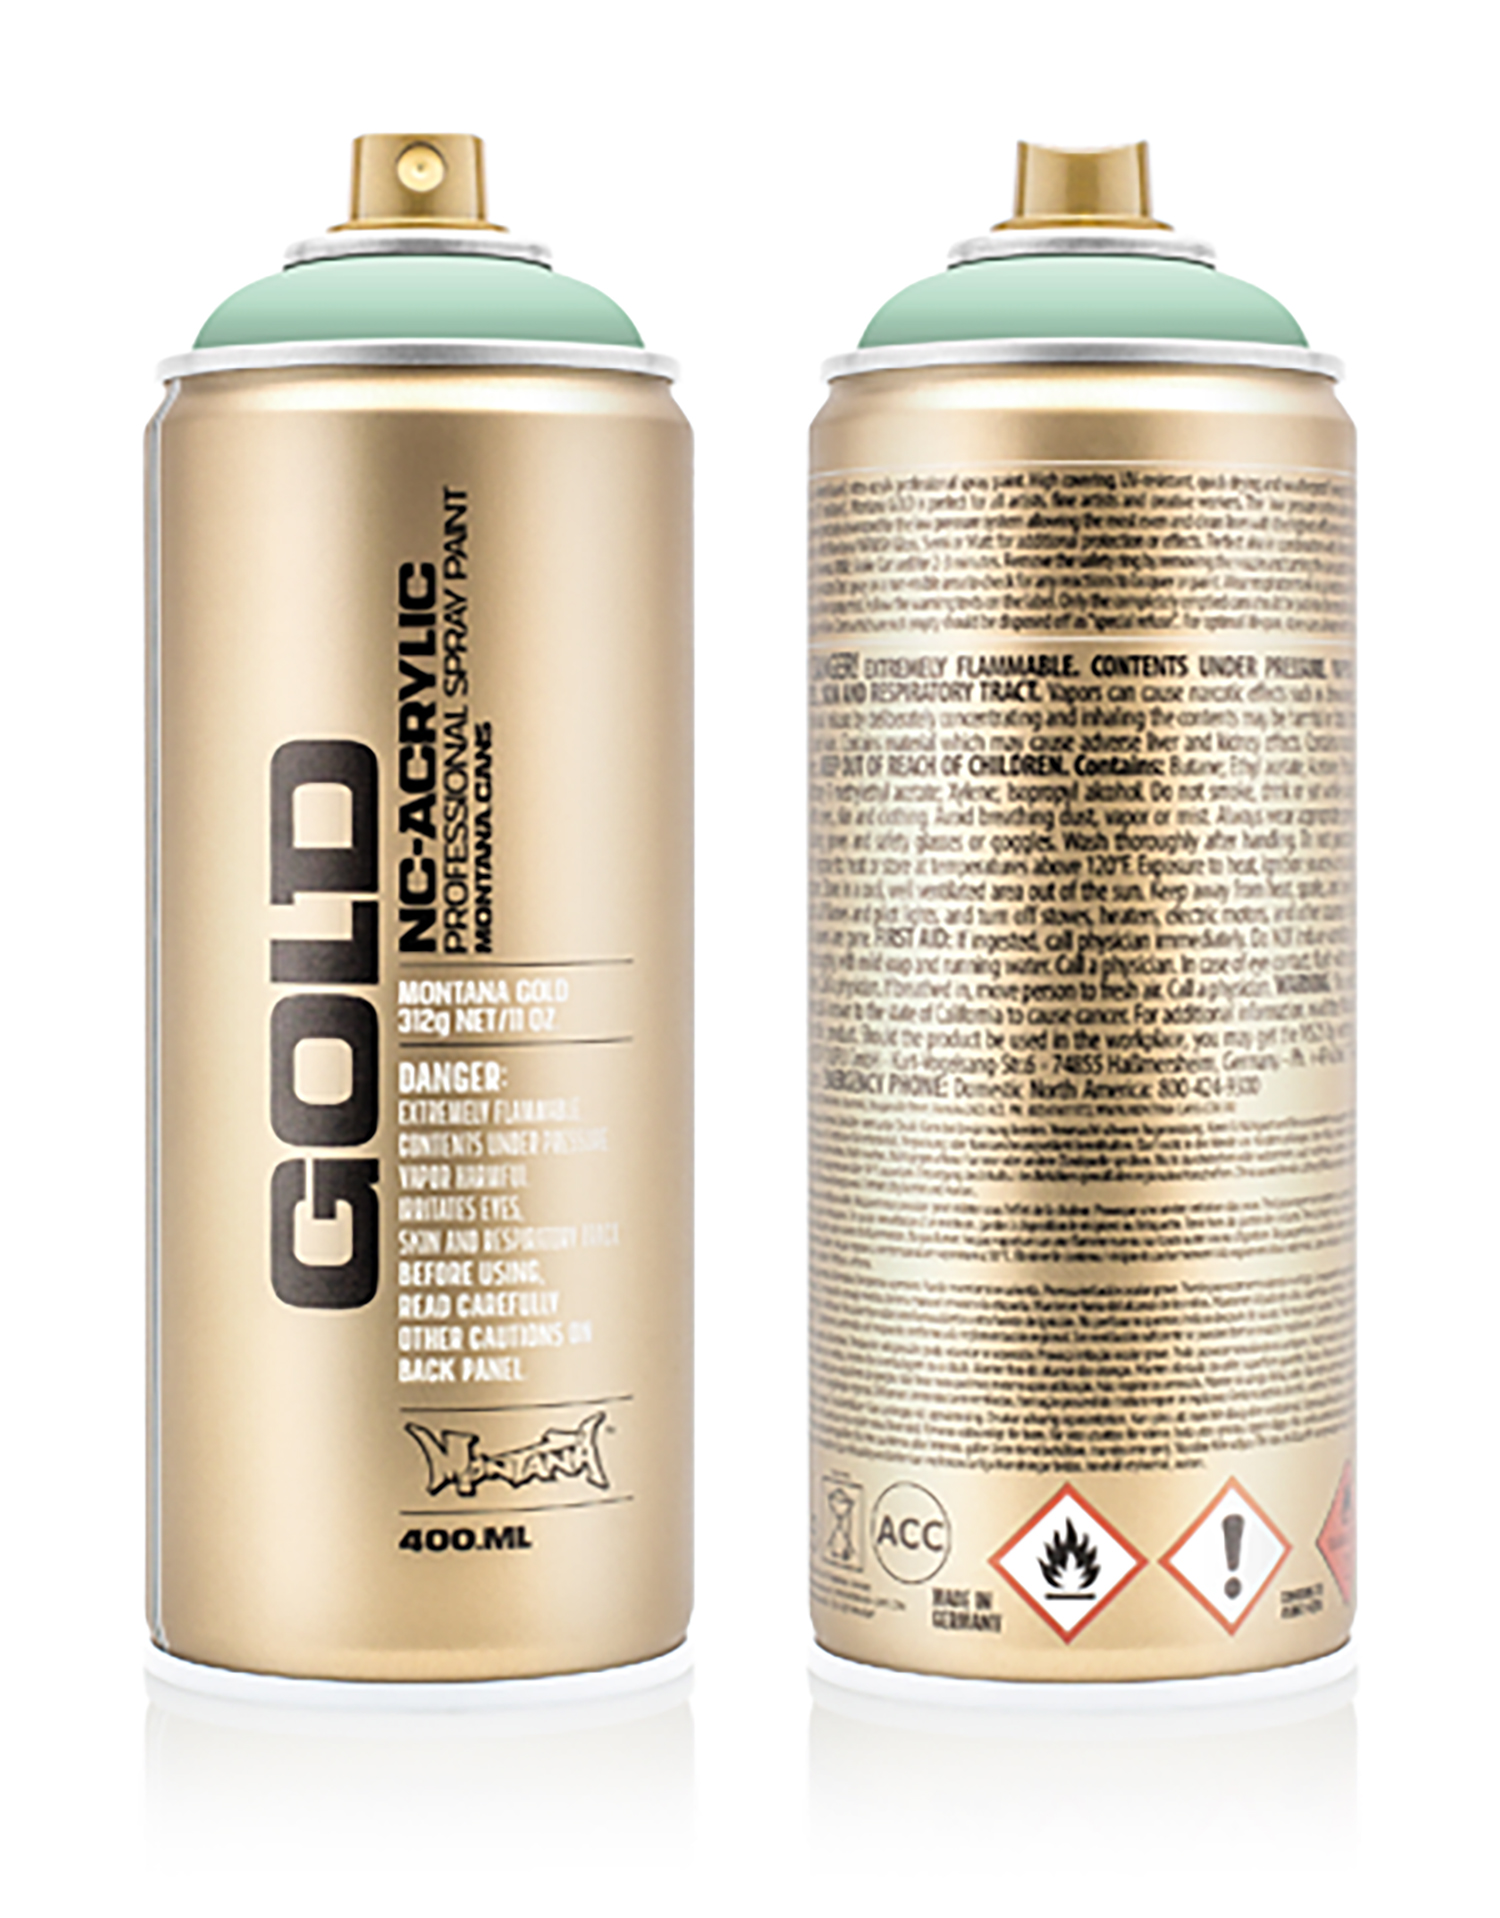 MONTANA-GOLD-SPRAY-400ML-G-6120